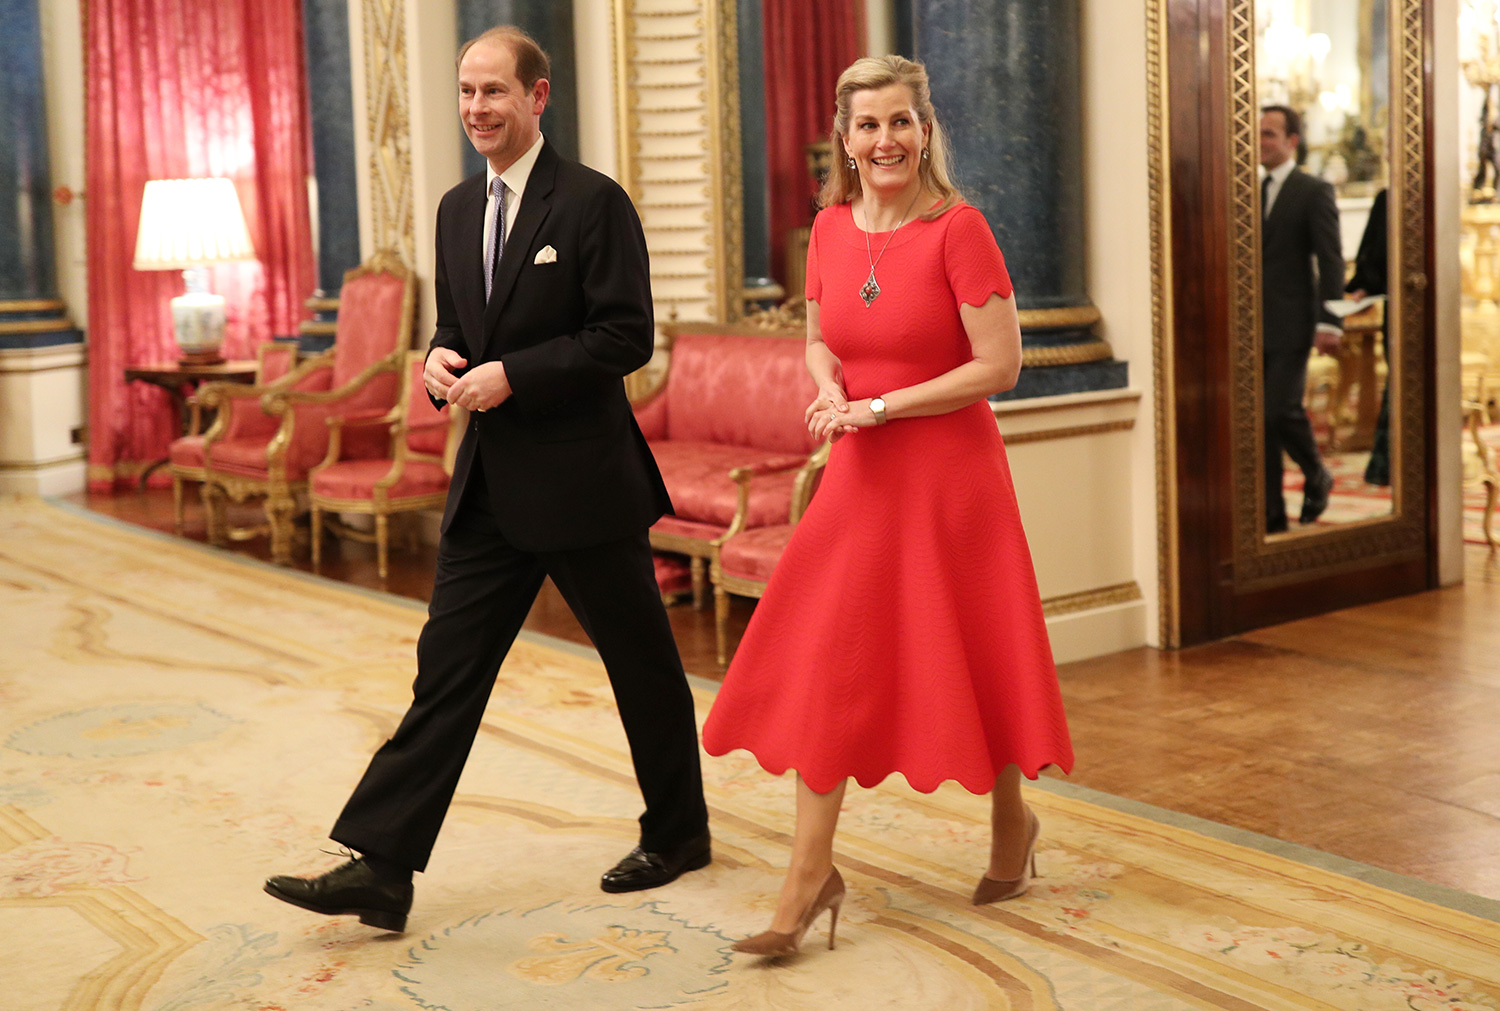 The Earl and Countess of Wessex arrives at a reception at Lonadon's Buckingham Palace to mark the UK-Africa Investment Summit.